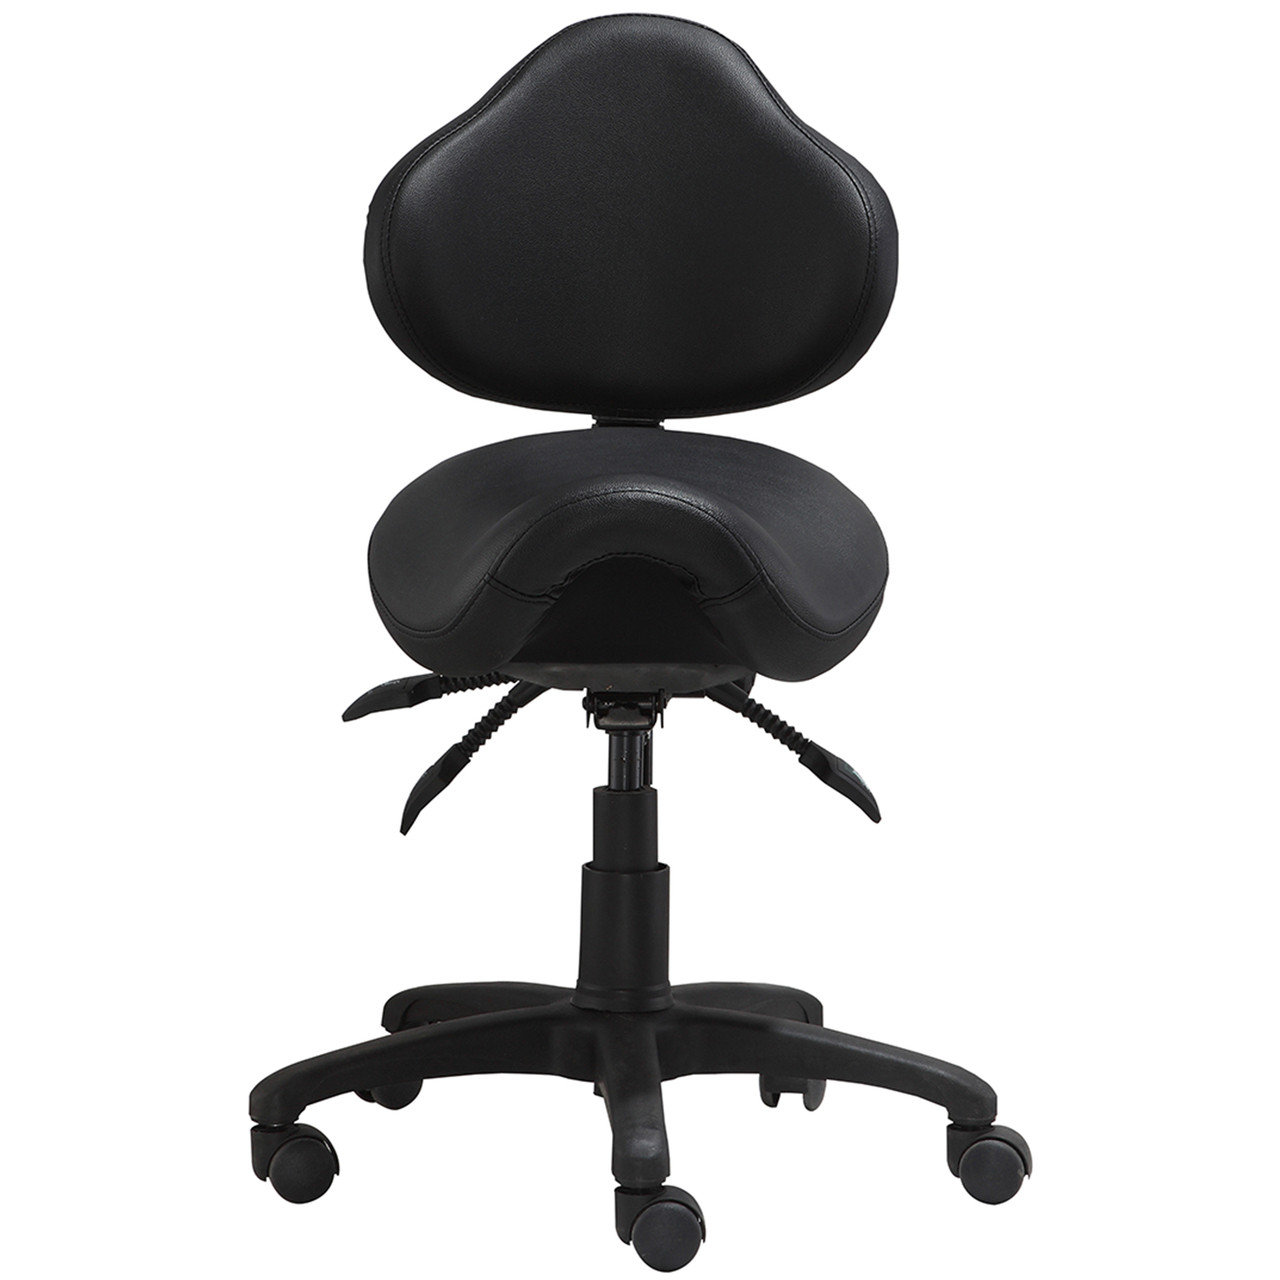 ergonomic adjustable rolling saddle stool with adjustable seat and